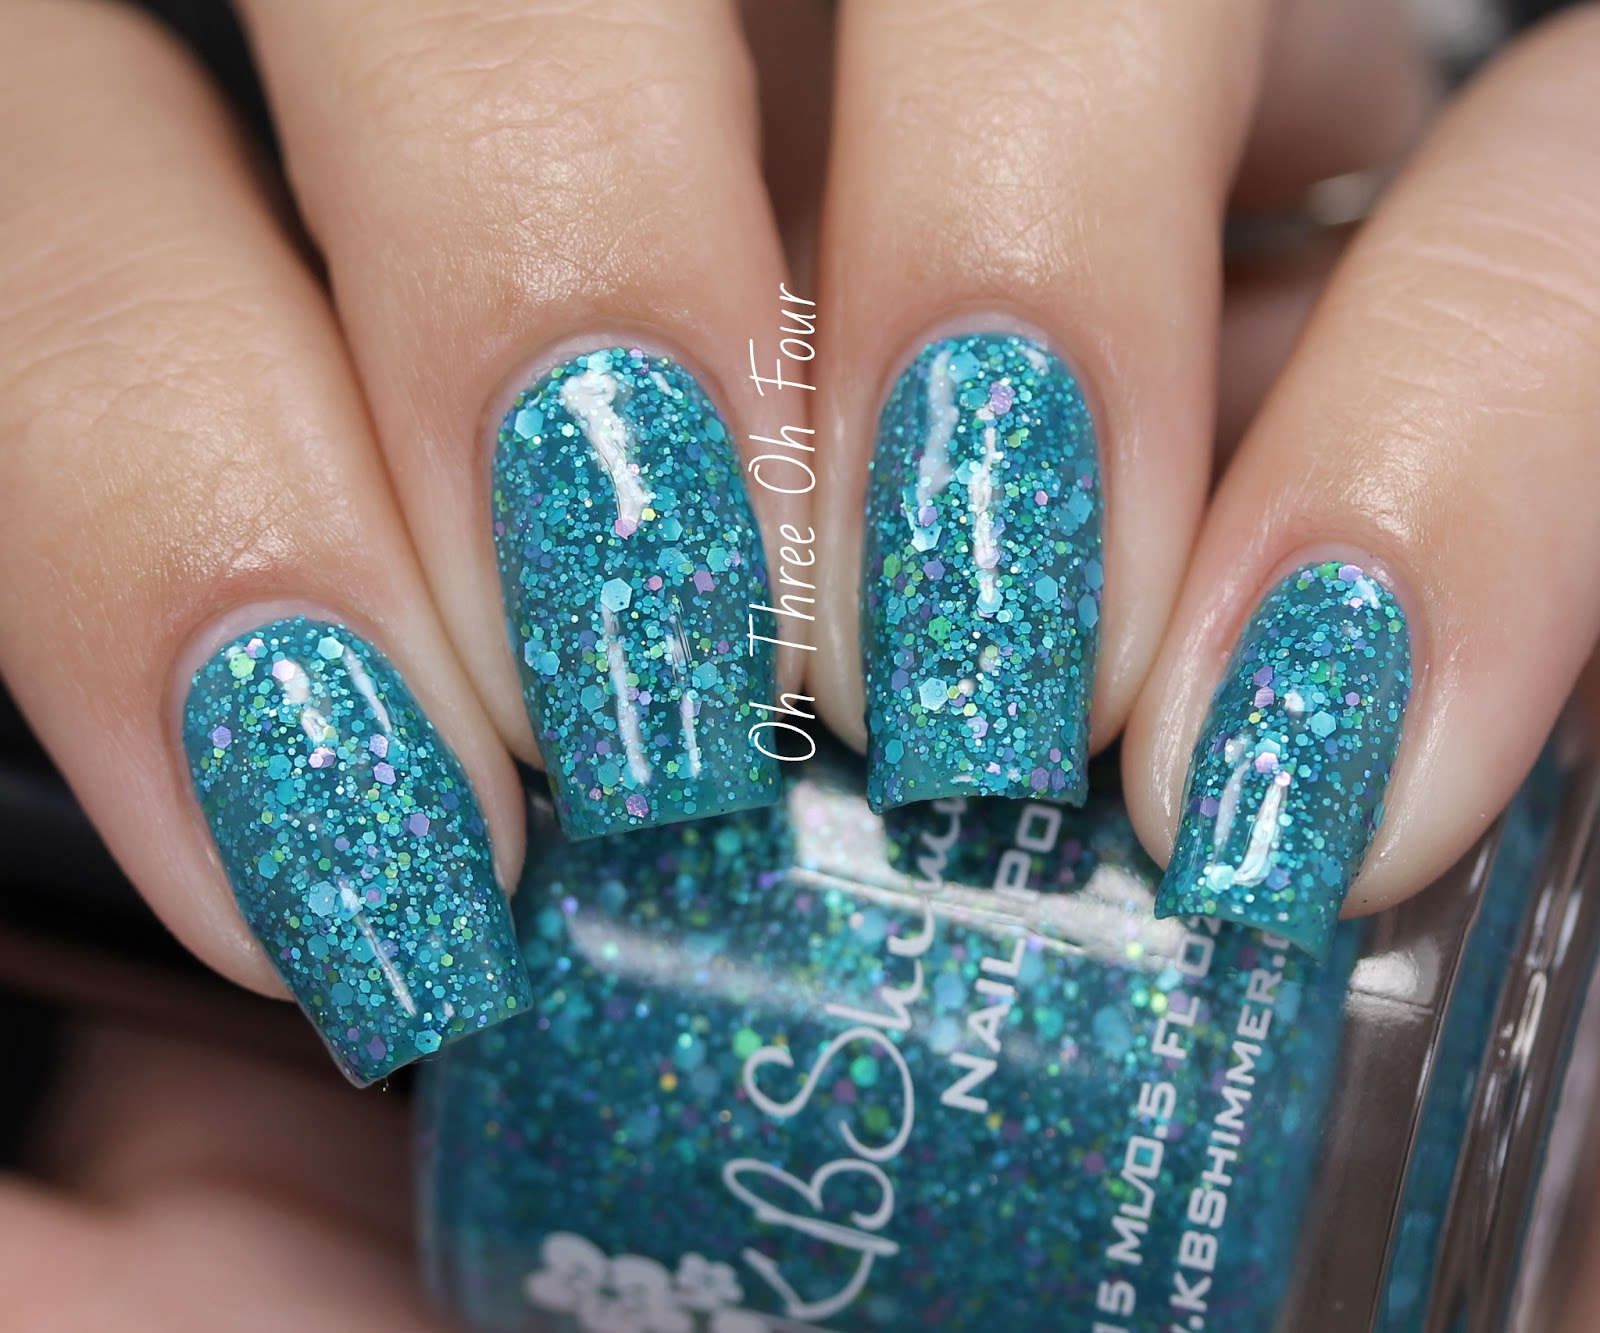 KBShimmer She Twerks Out Swatch